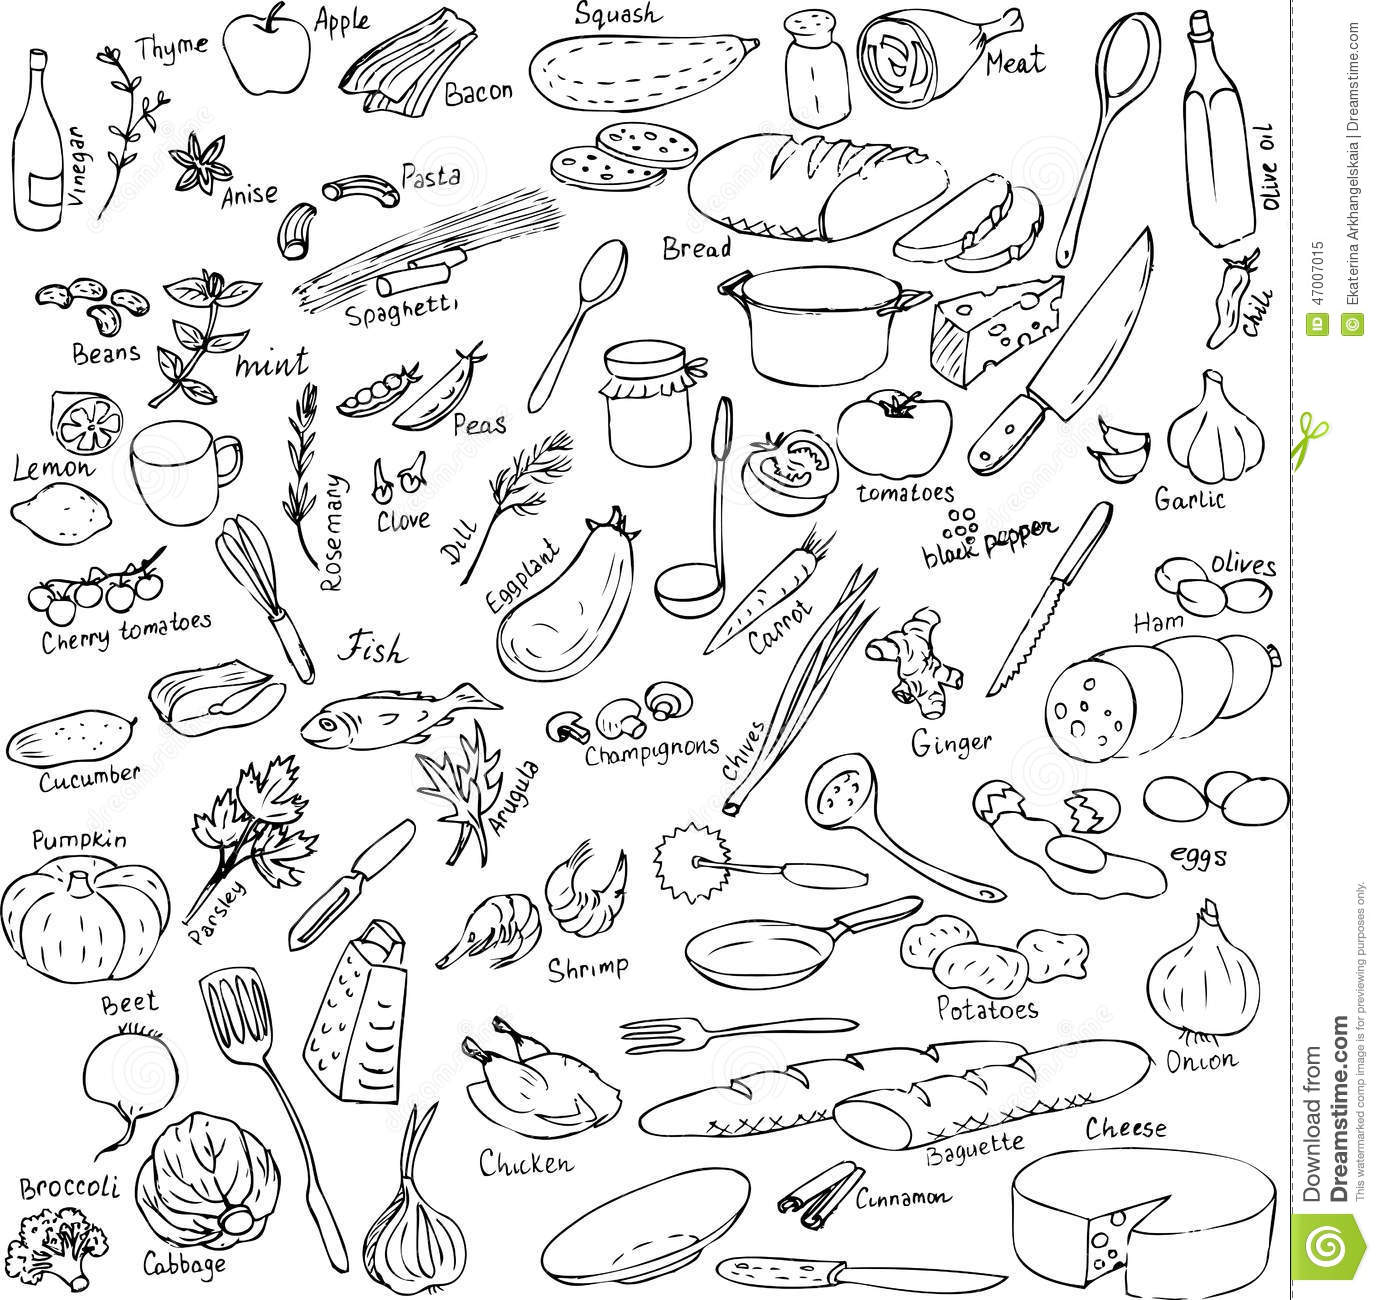 Baby Küchengeräte Sketch Of Foods Utensils And Kitchen Equipment Stock